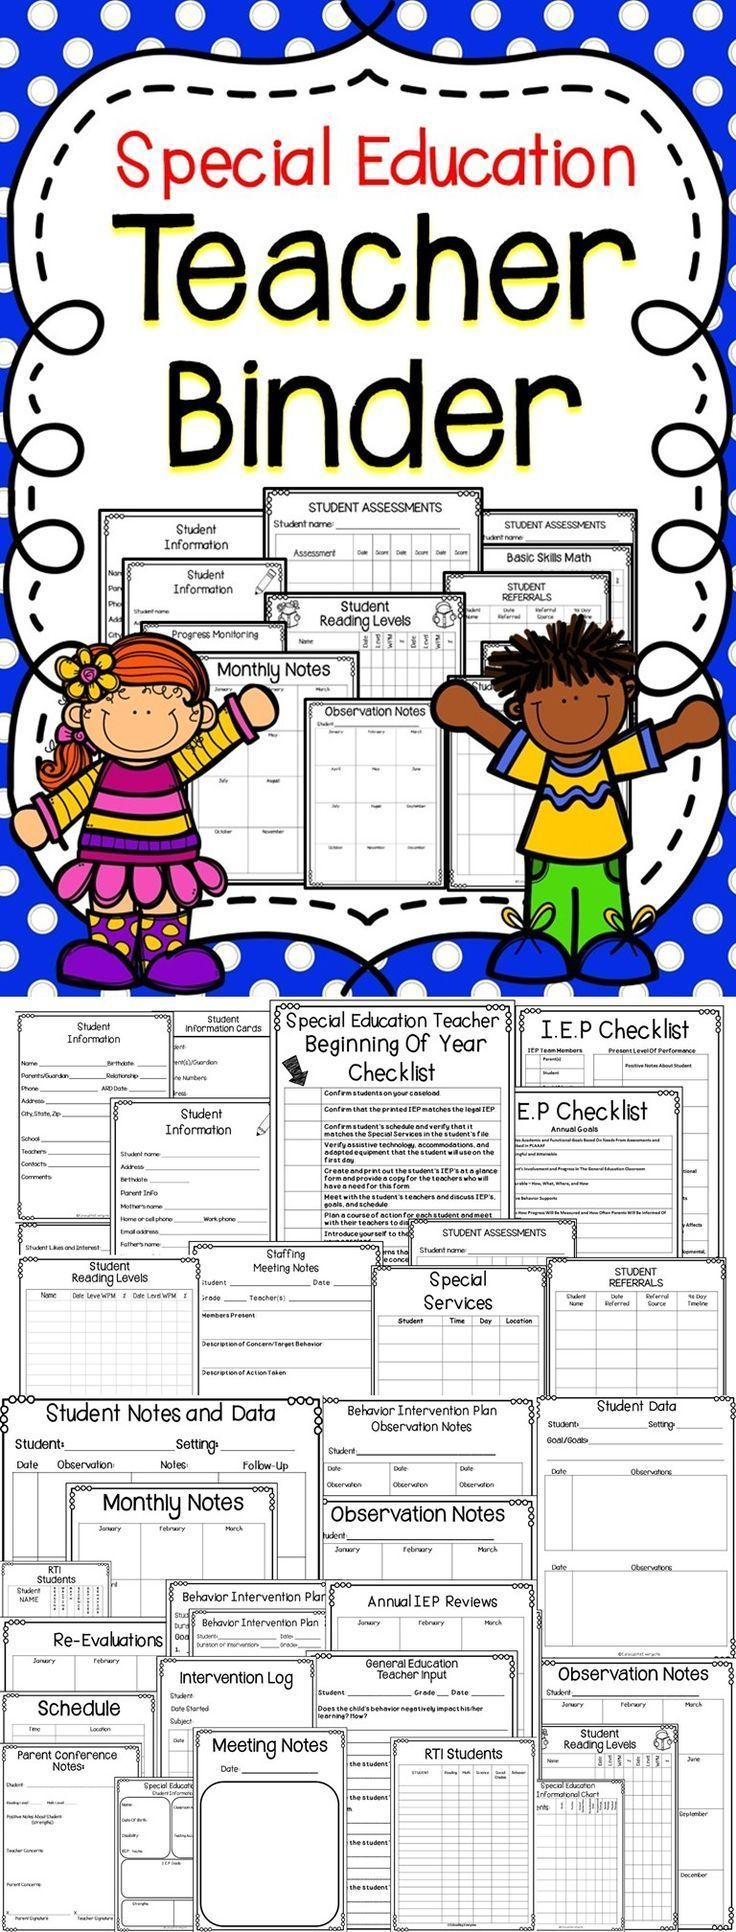 Classroom organization is a must when working with special education students. This teacher binder is a great resource for special education teachers and inclusion teachers.